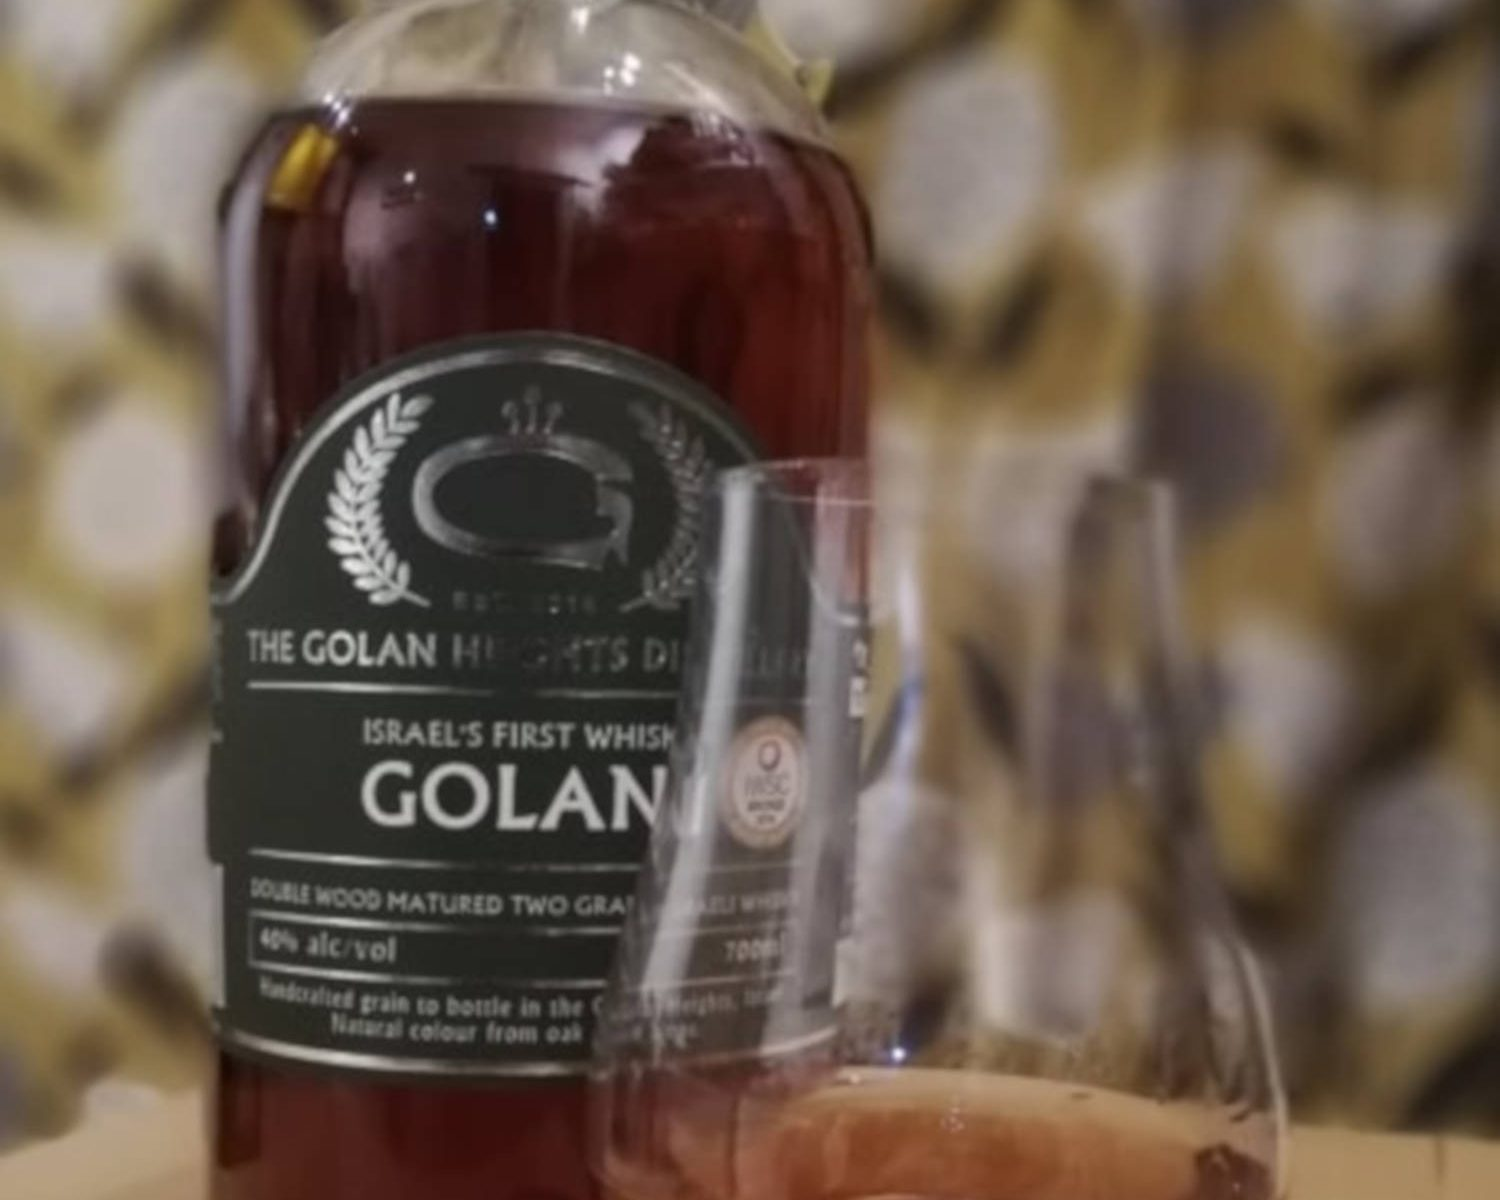 Golani double wood matured two grain Israeli whisky